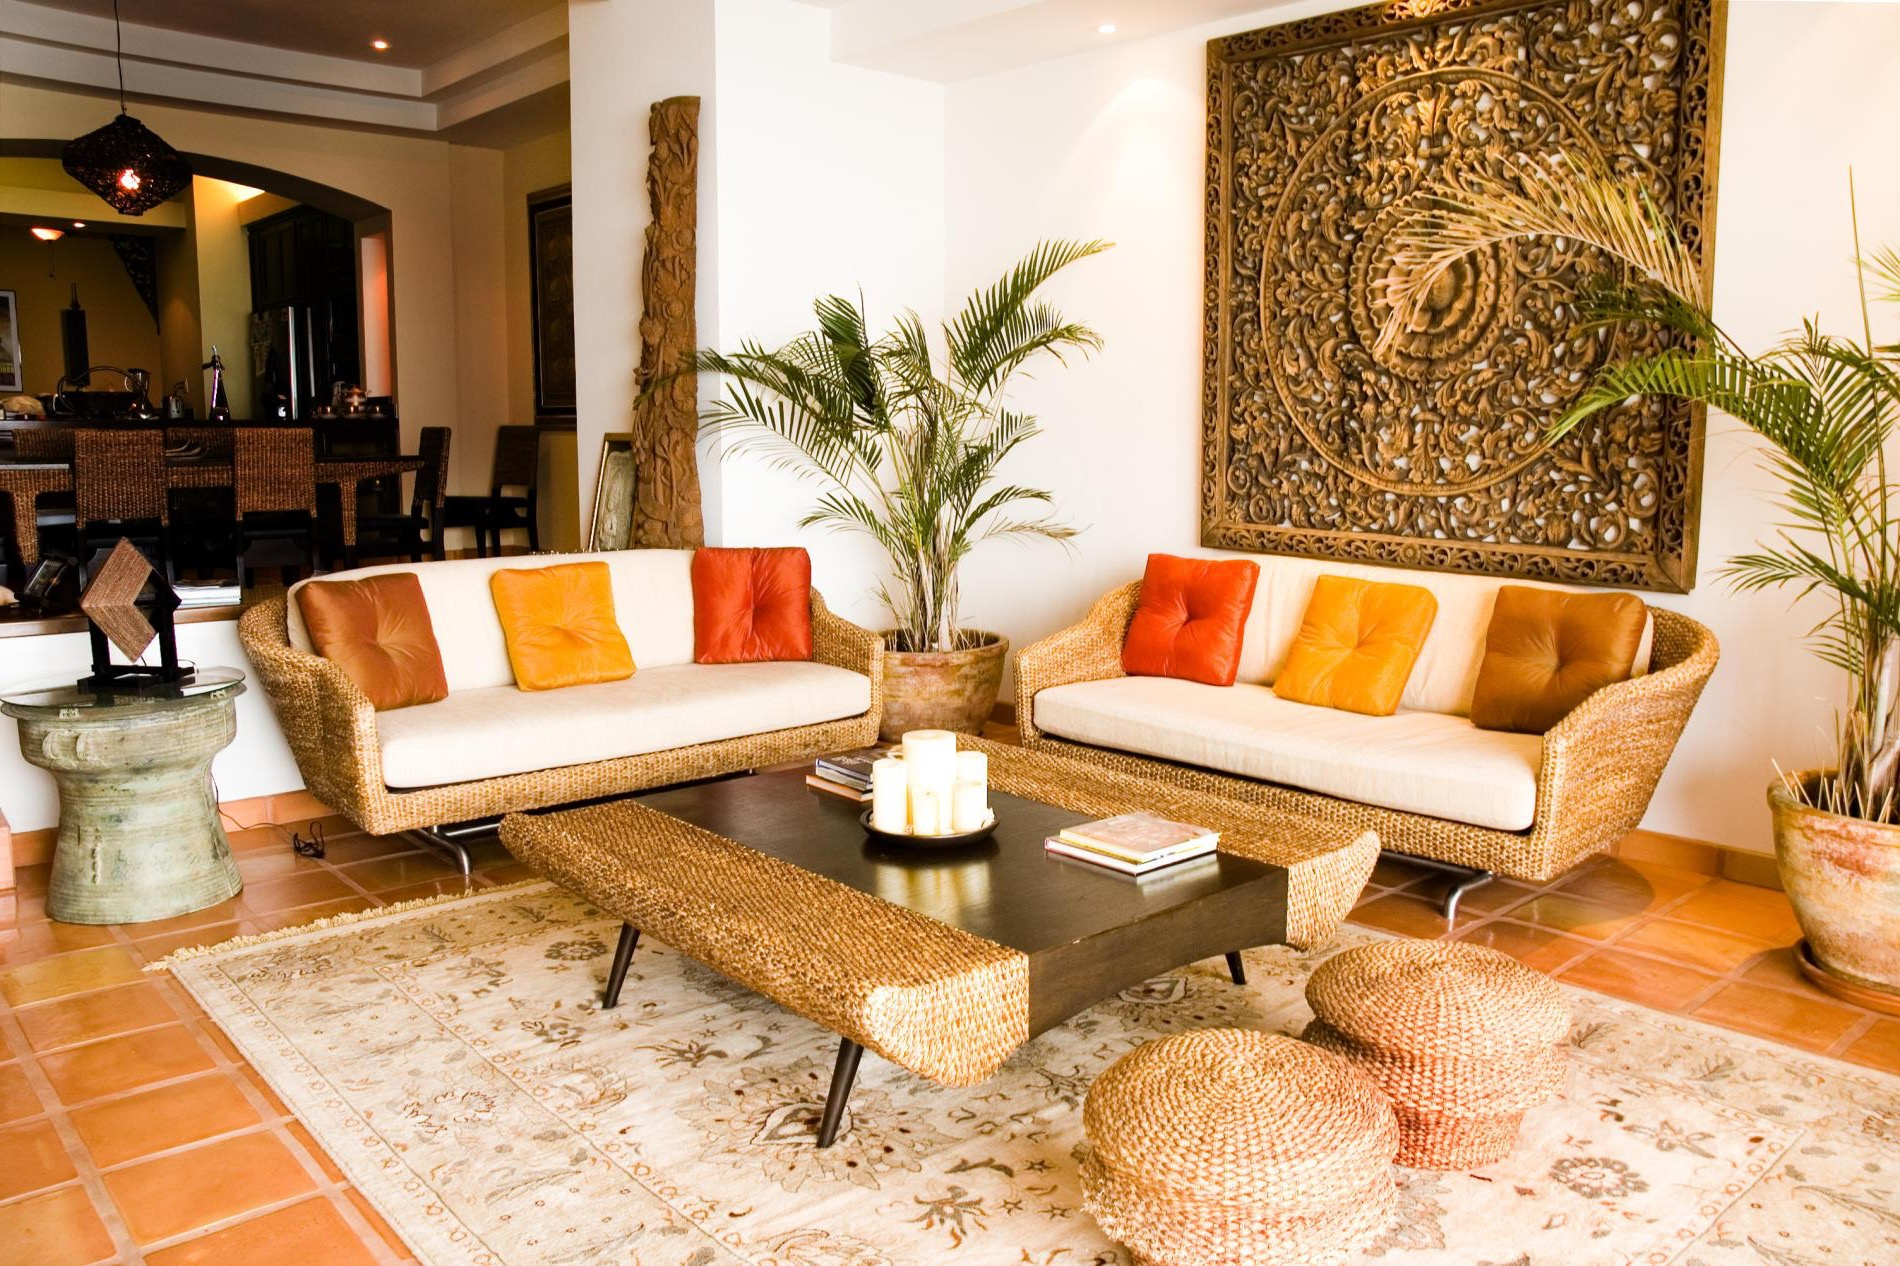 Indian living room interior decoration 14401 living - Carpets for living room online india ...